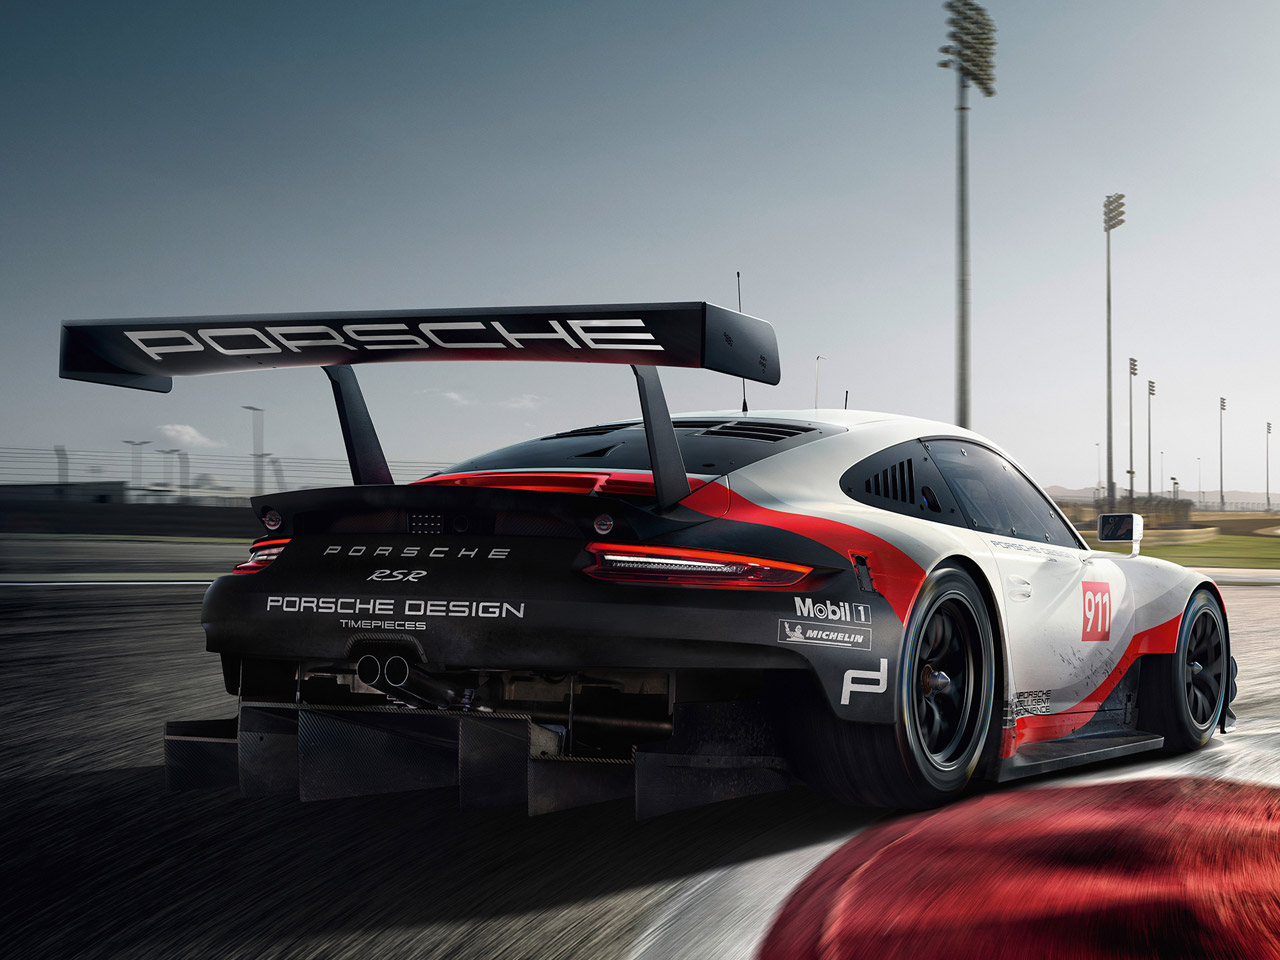 Porsche Porsche´s motorsport year 2019. A look ahead.